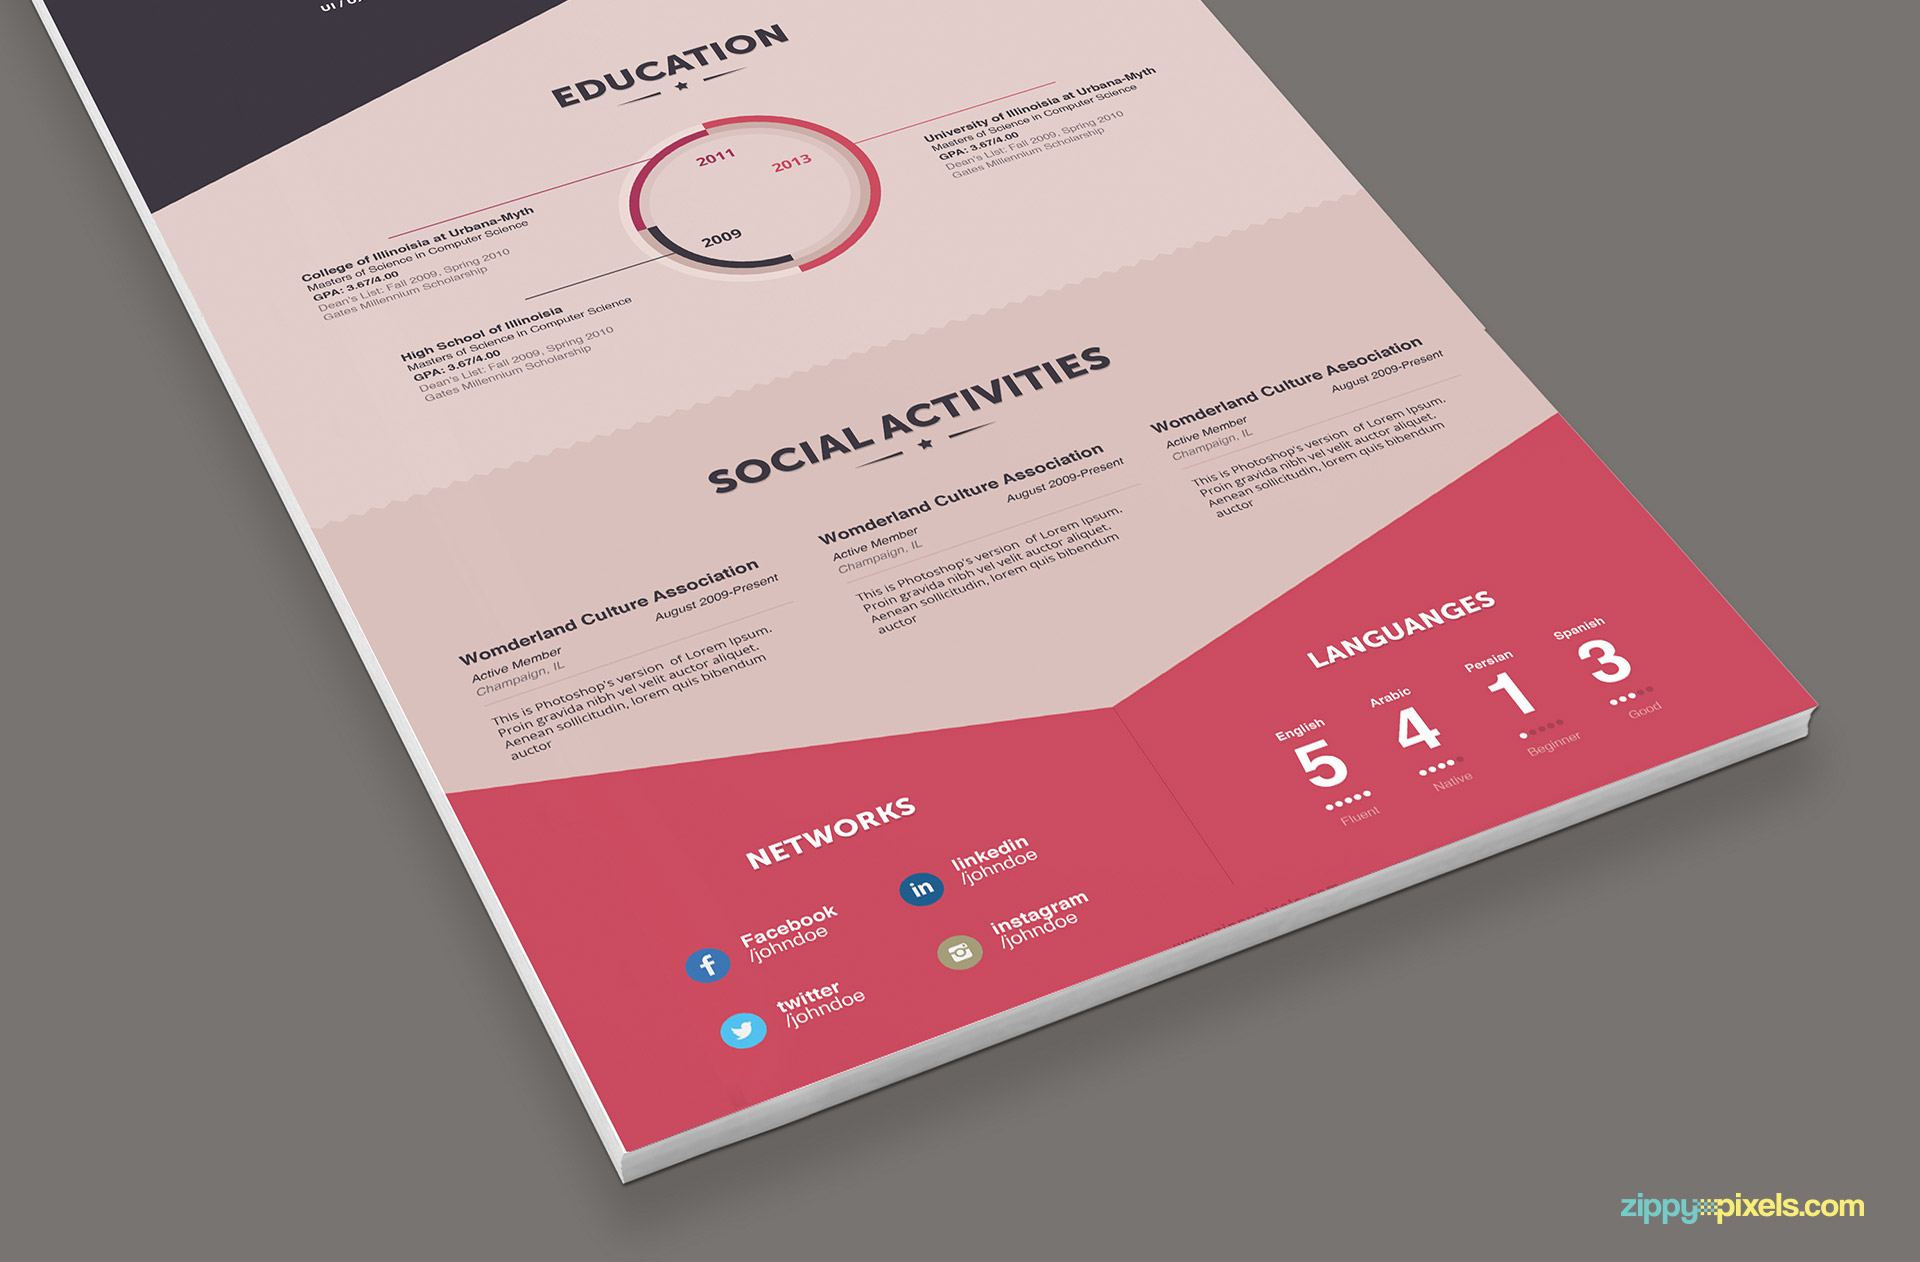 Infographic Resume & Cover Letter - Creative Resume Photoshop Templates